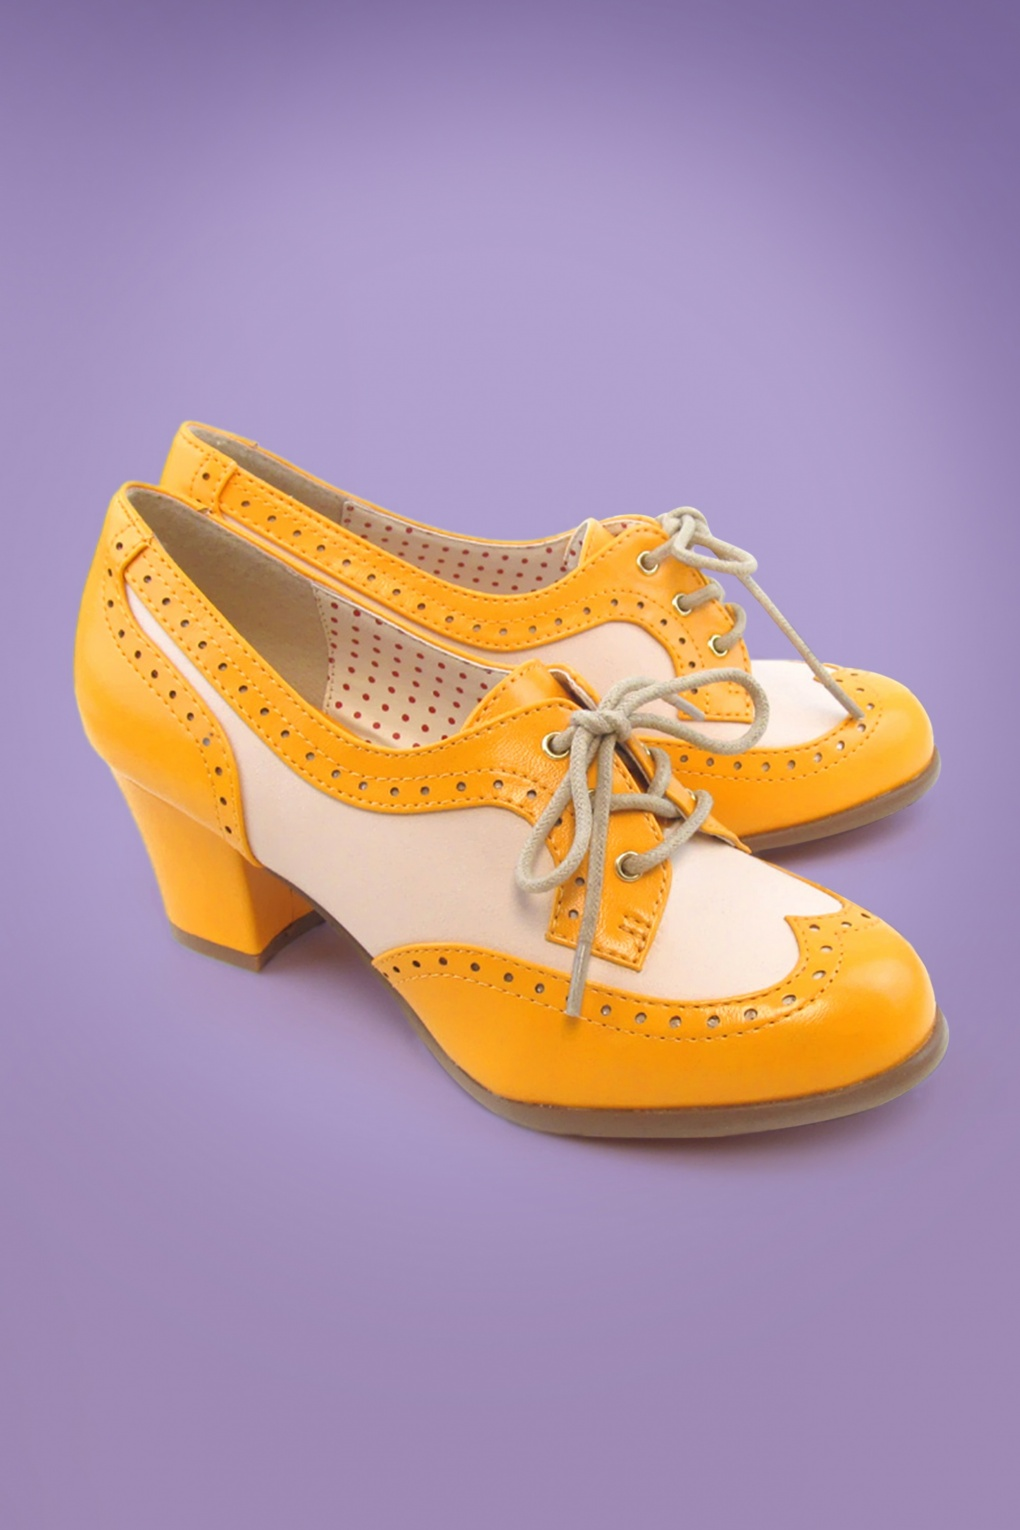 10 Popular 1940s Shoes Styles for Women 40s Remmy Oxford Shoes in Mustard �68.49 AT vintagedancer.com